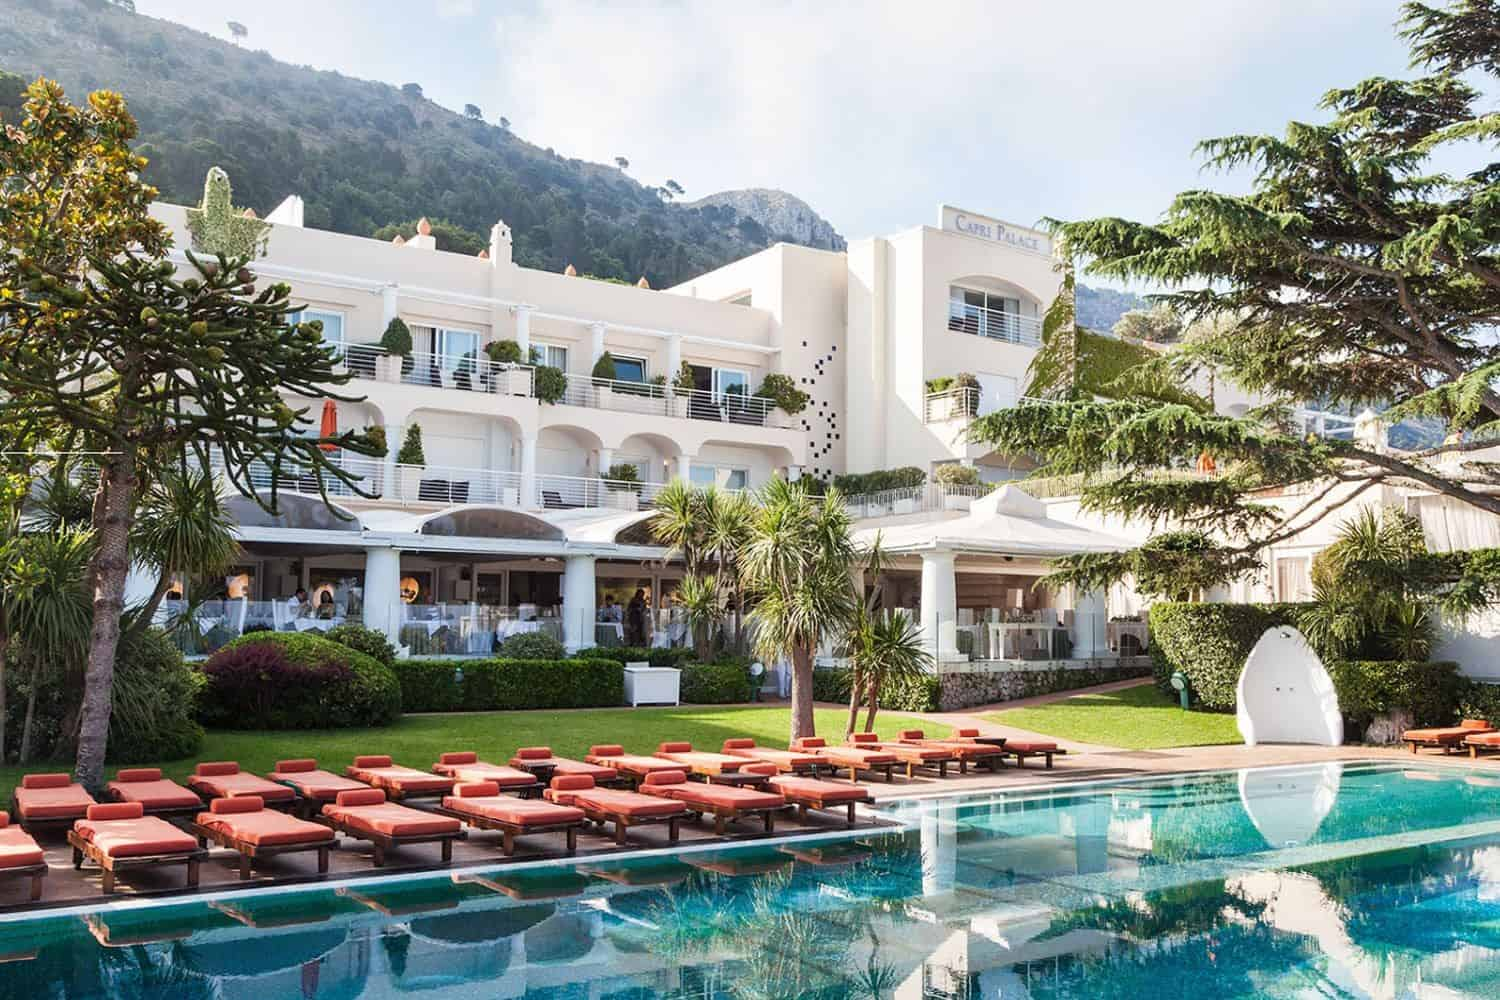 Jumeirah Group adds the Iconic Capri Palace to its Impressive Portfolio